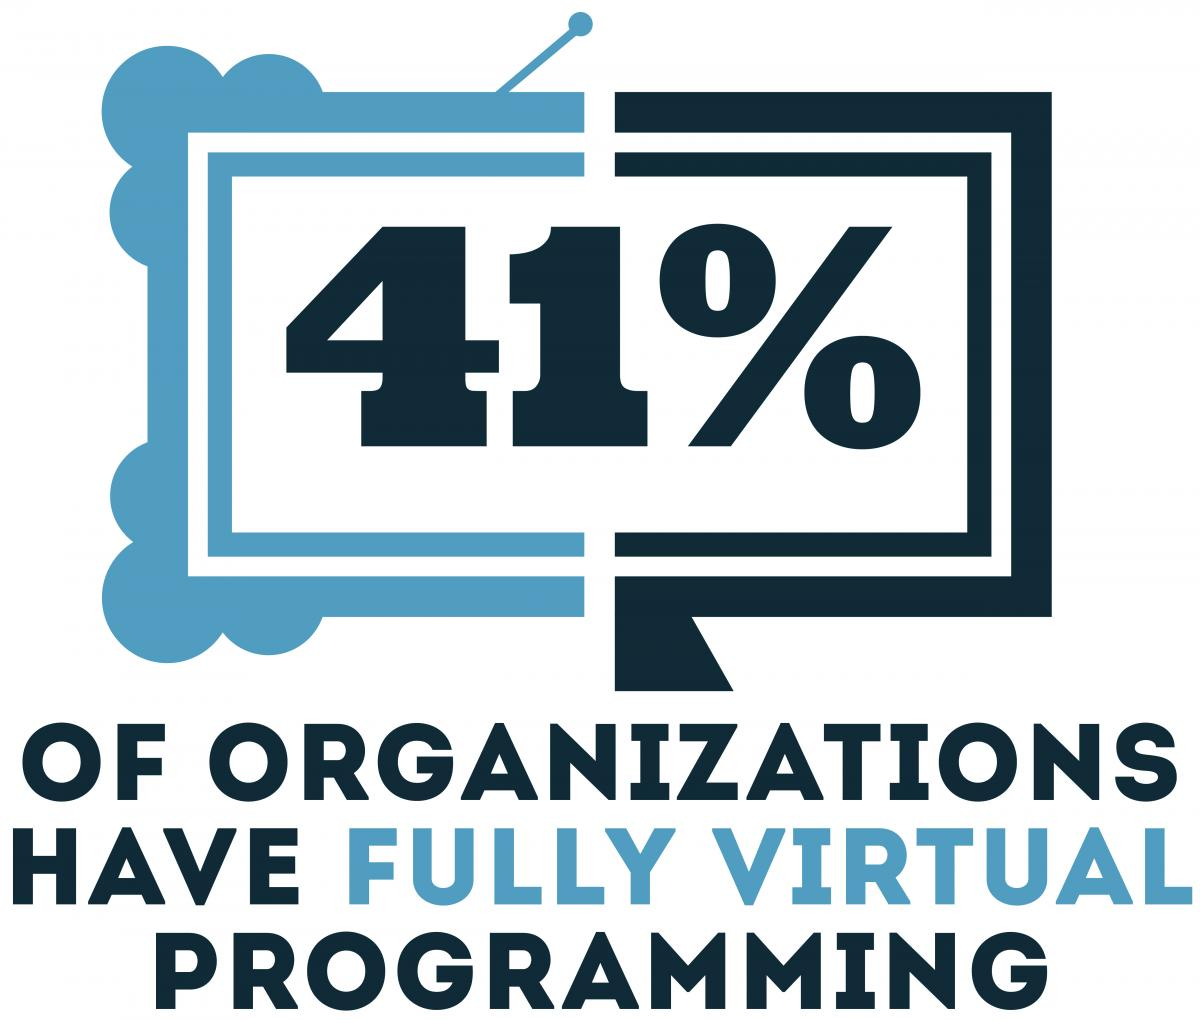 41% of organizations have full virtual programming